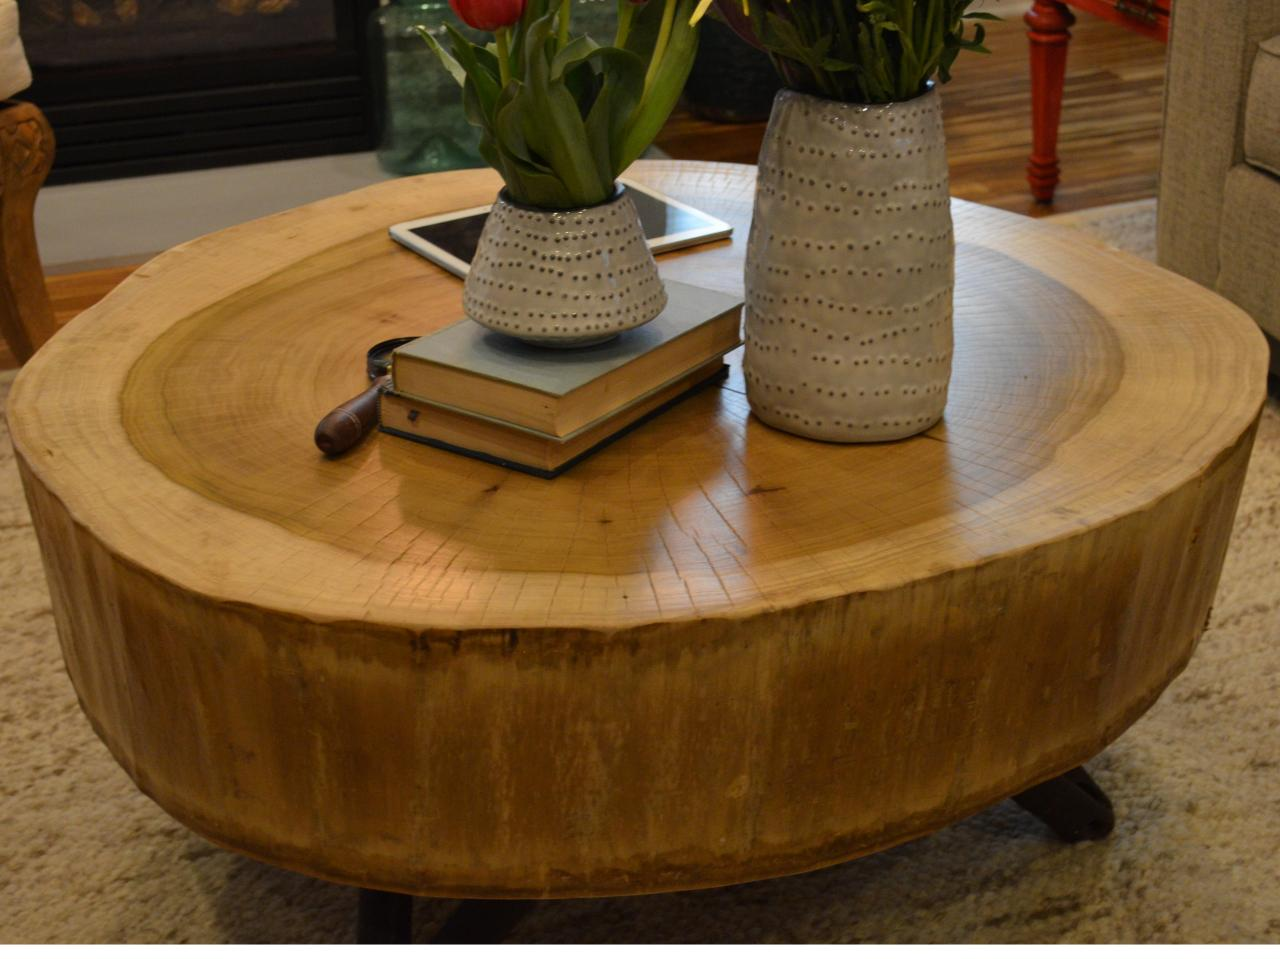 tree stump furniture table round fossil brewing design curious wood accent green coffee mirrored bedside next sofa mid century modern dining multi colored black storage cabinet